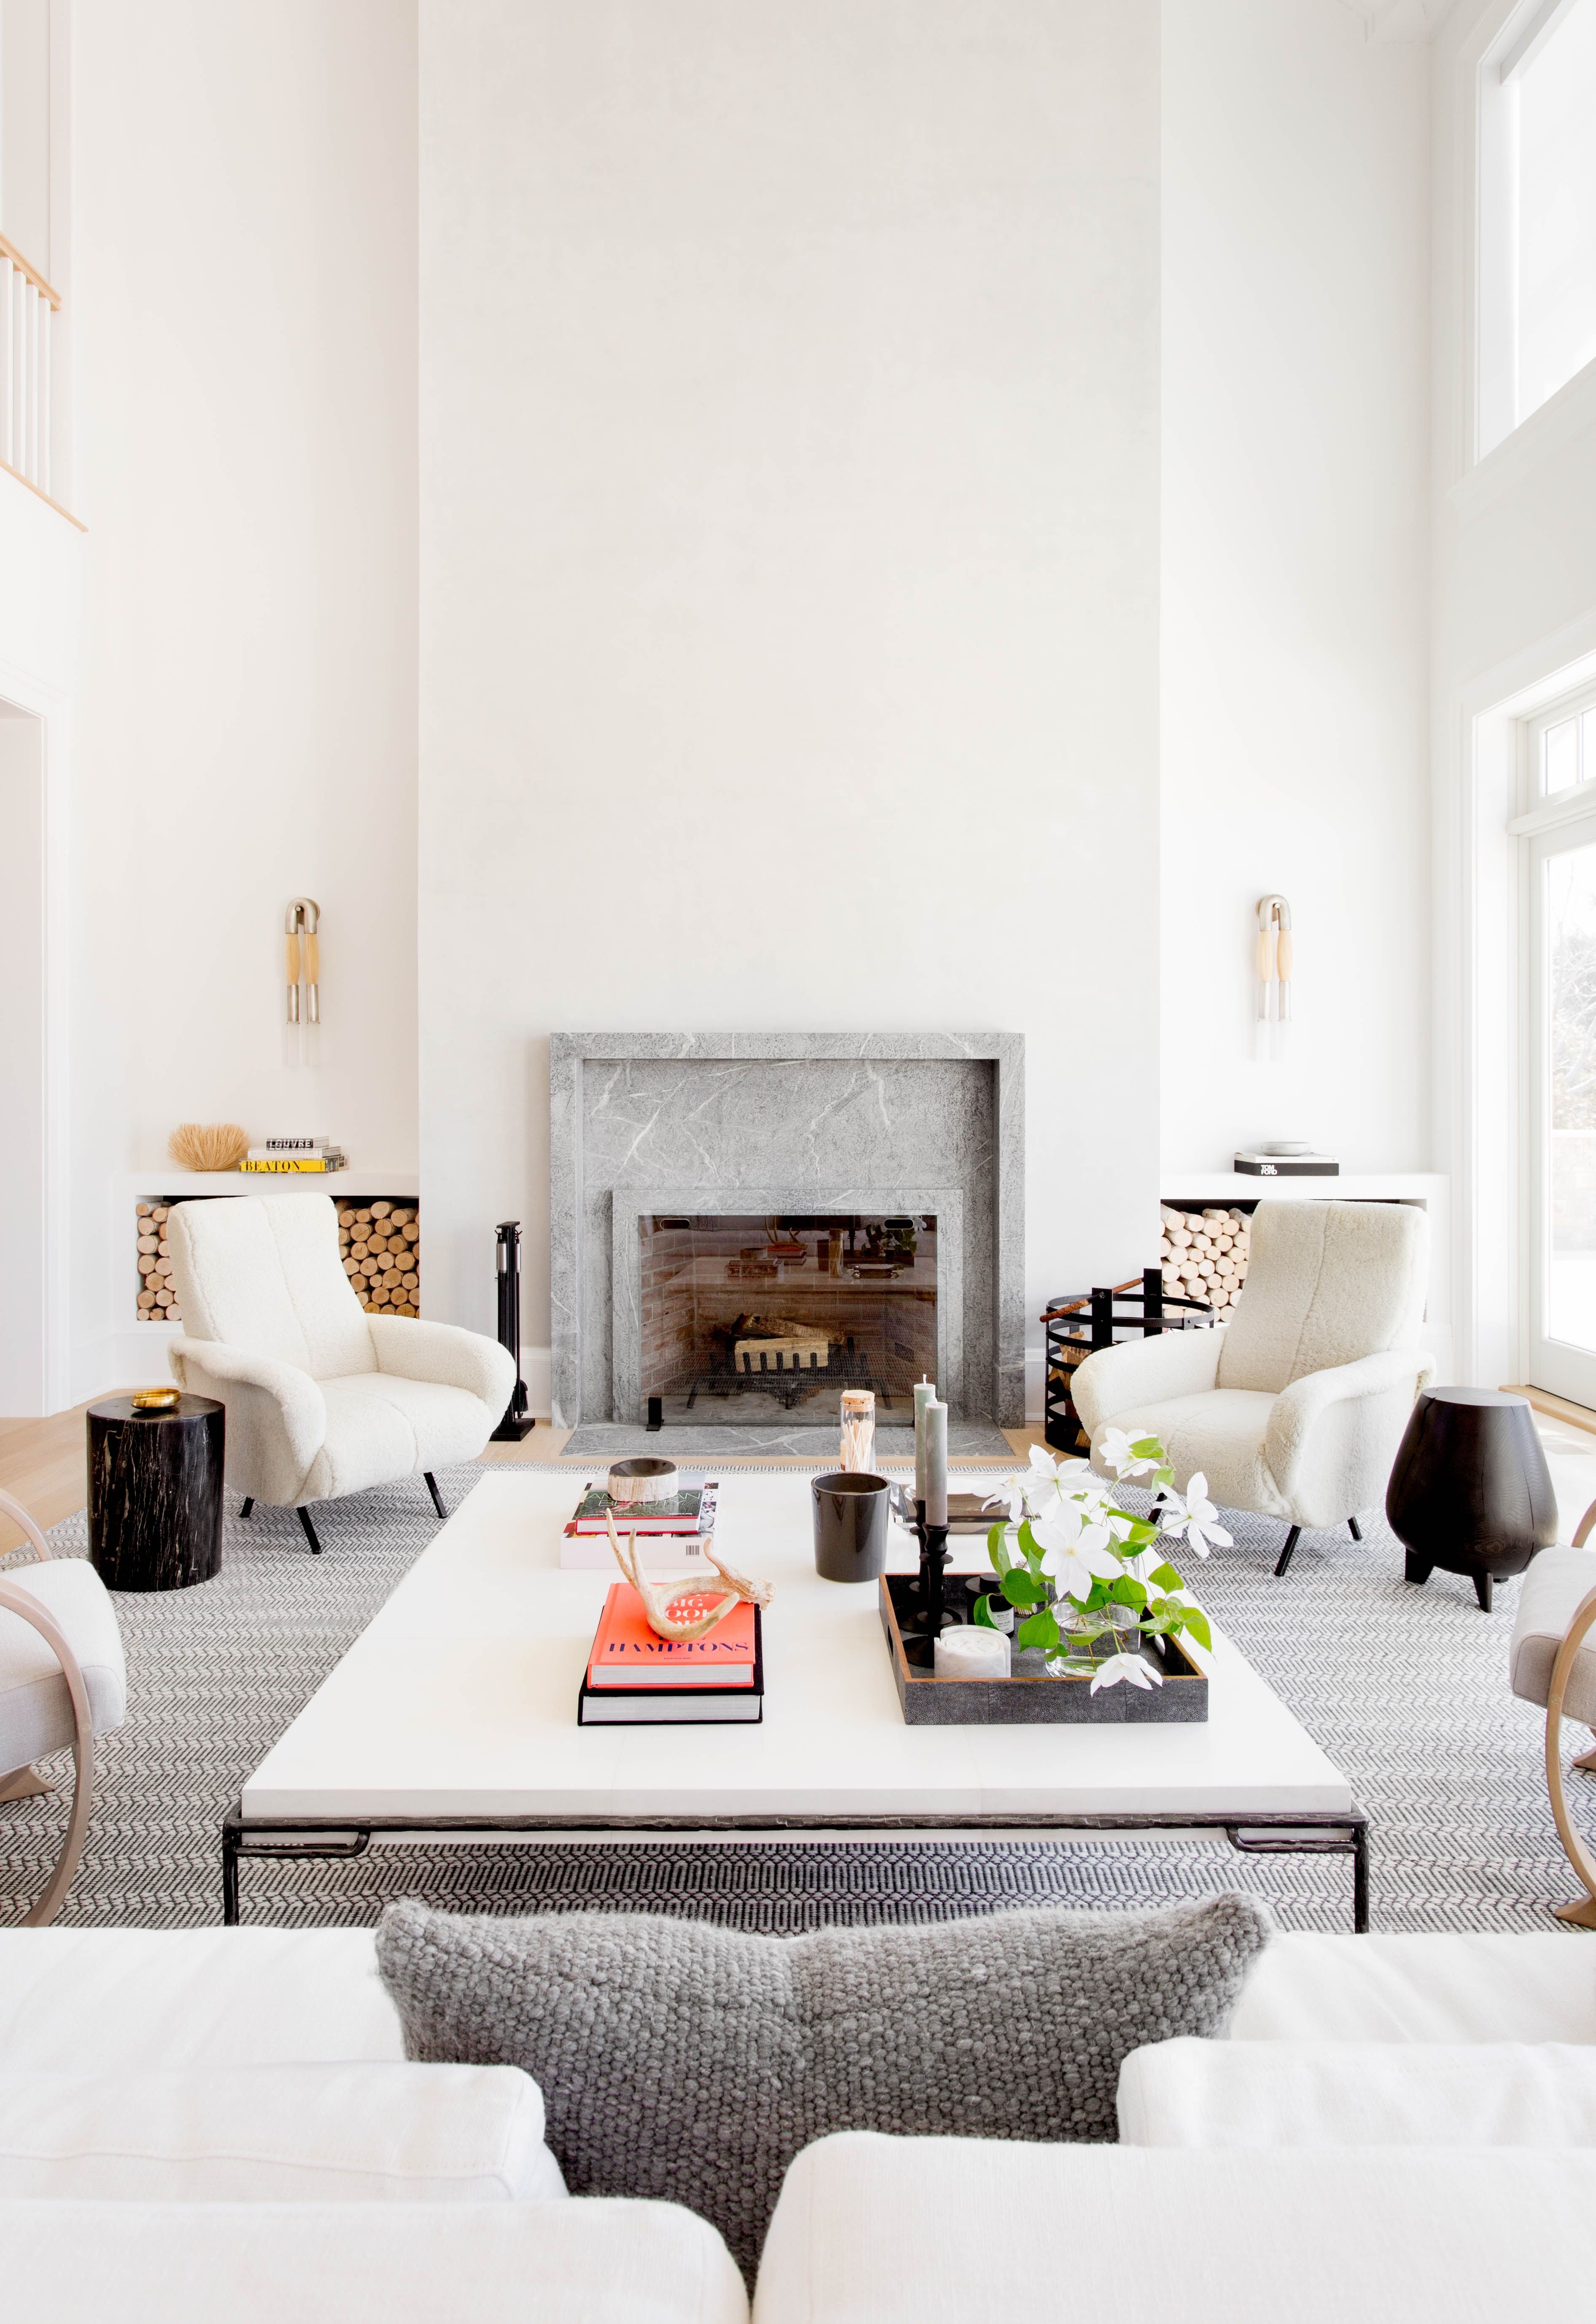 Hamptons Living Room By Tamara Magel - Photo By Rikki